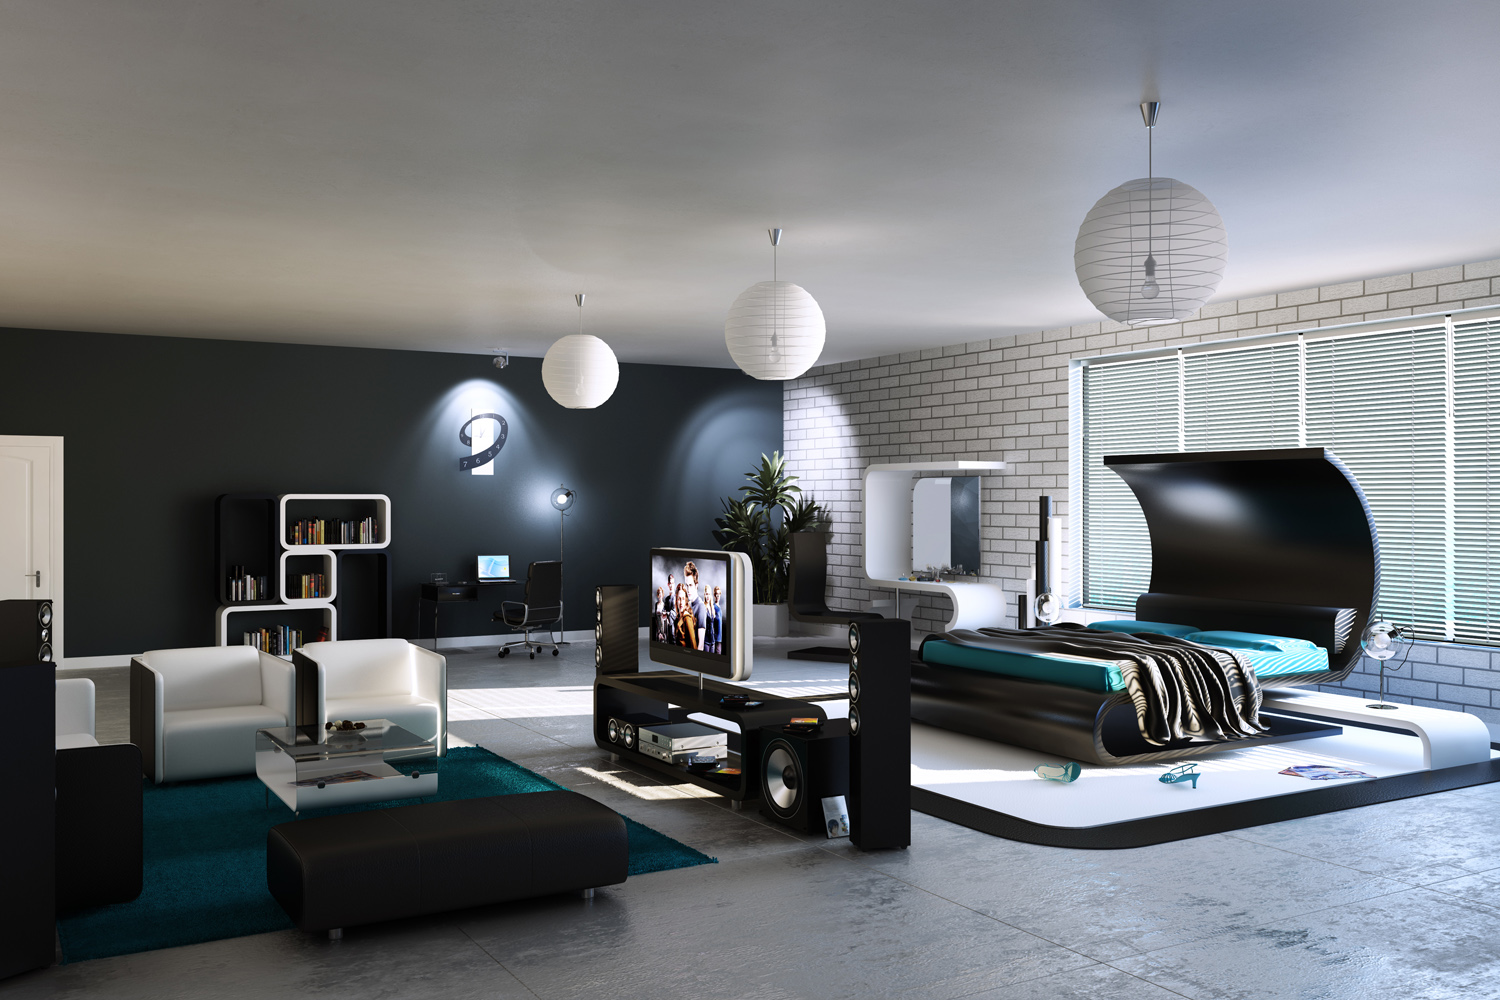 The Most Stylish and Modern Bedroom Ideas - Wow Amazing on Amazing Bedroom Ideas  id=35958